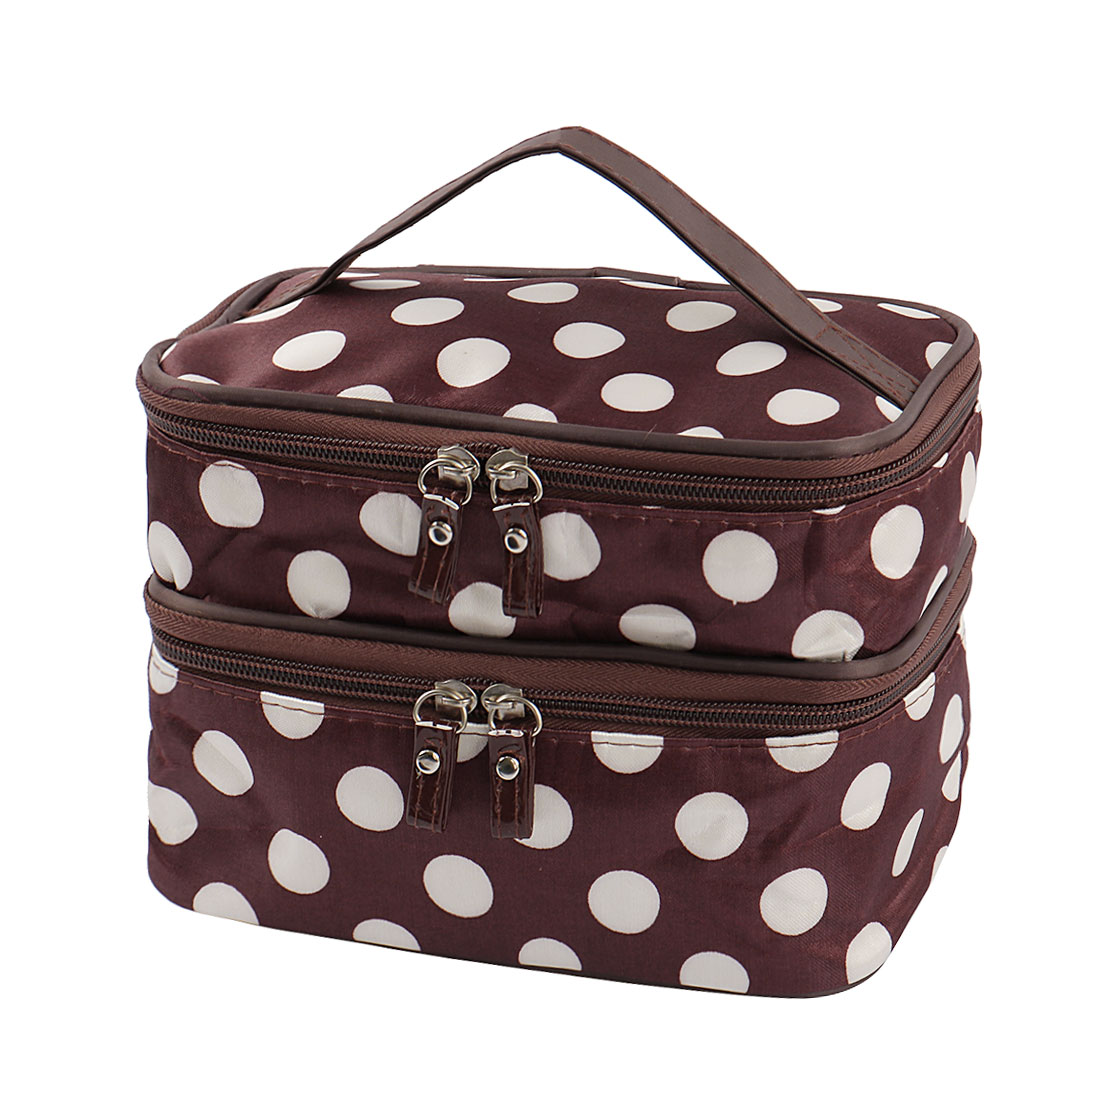 Zipped Cosmetic Bag Double Layer Make Up Case Handbag Pouch (Brown+White Dots)